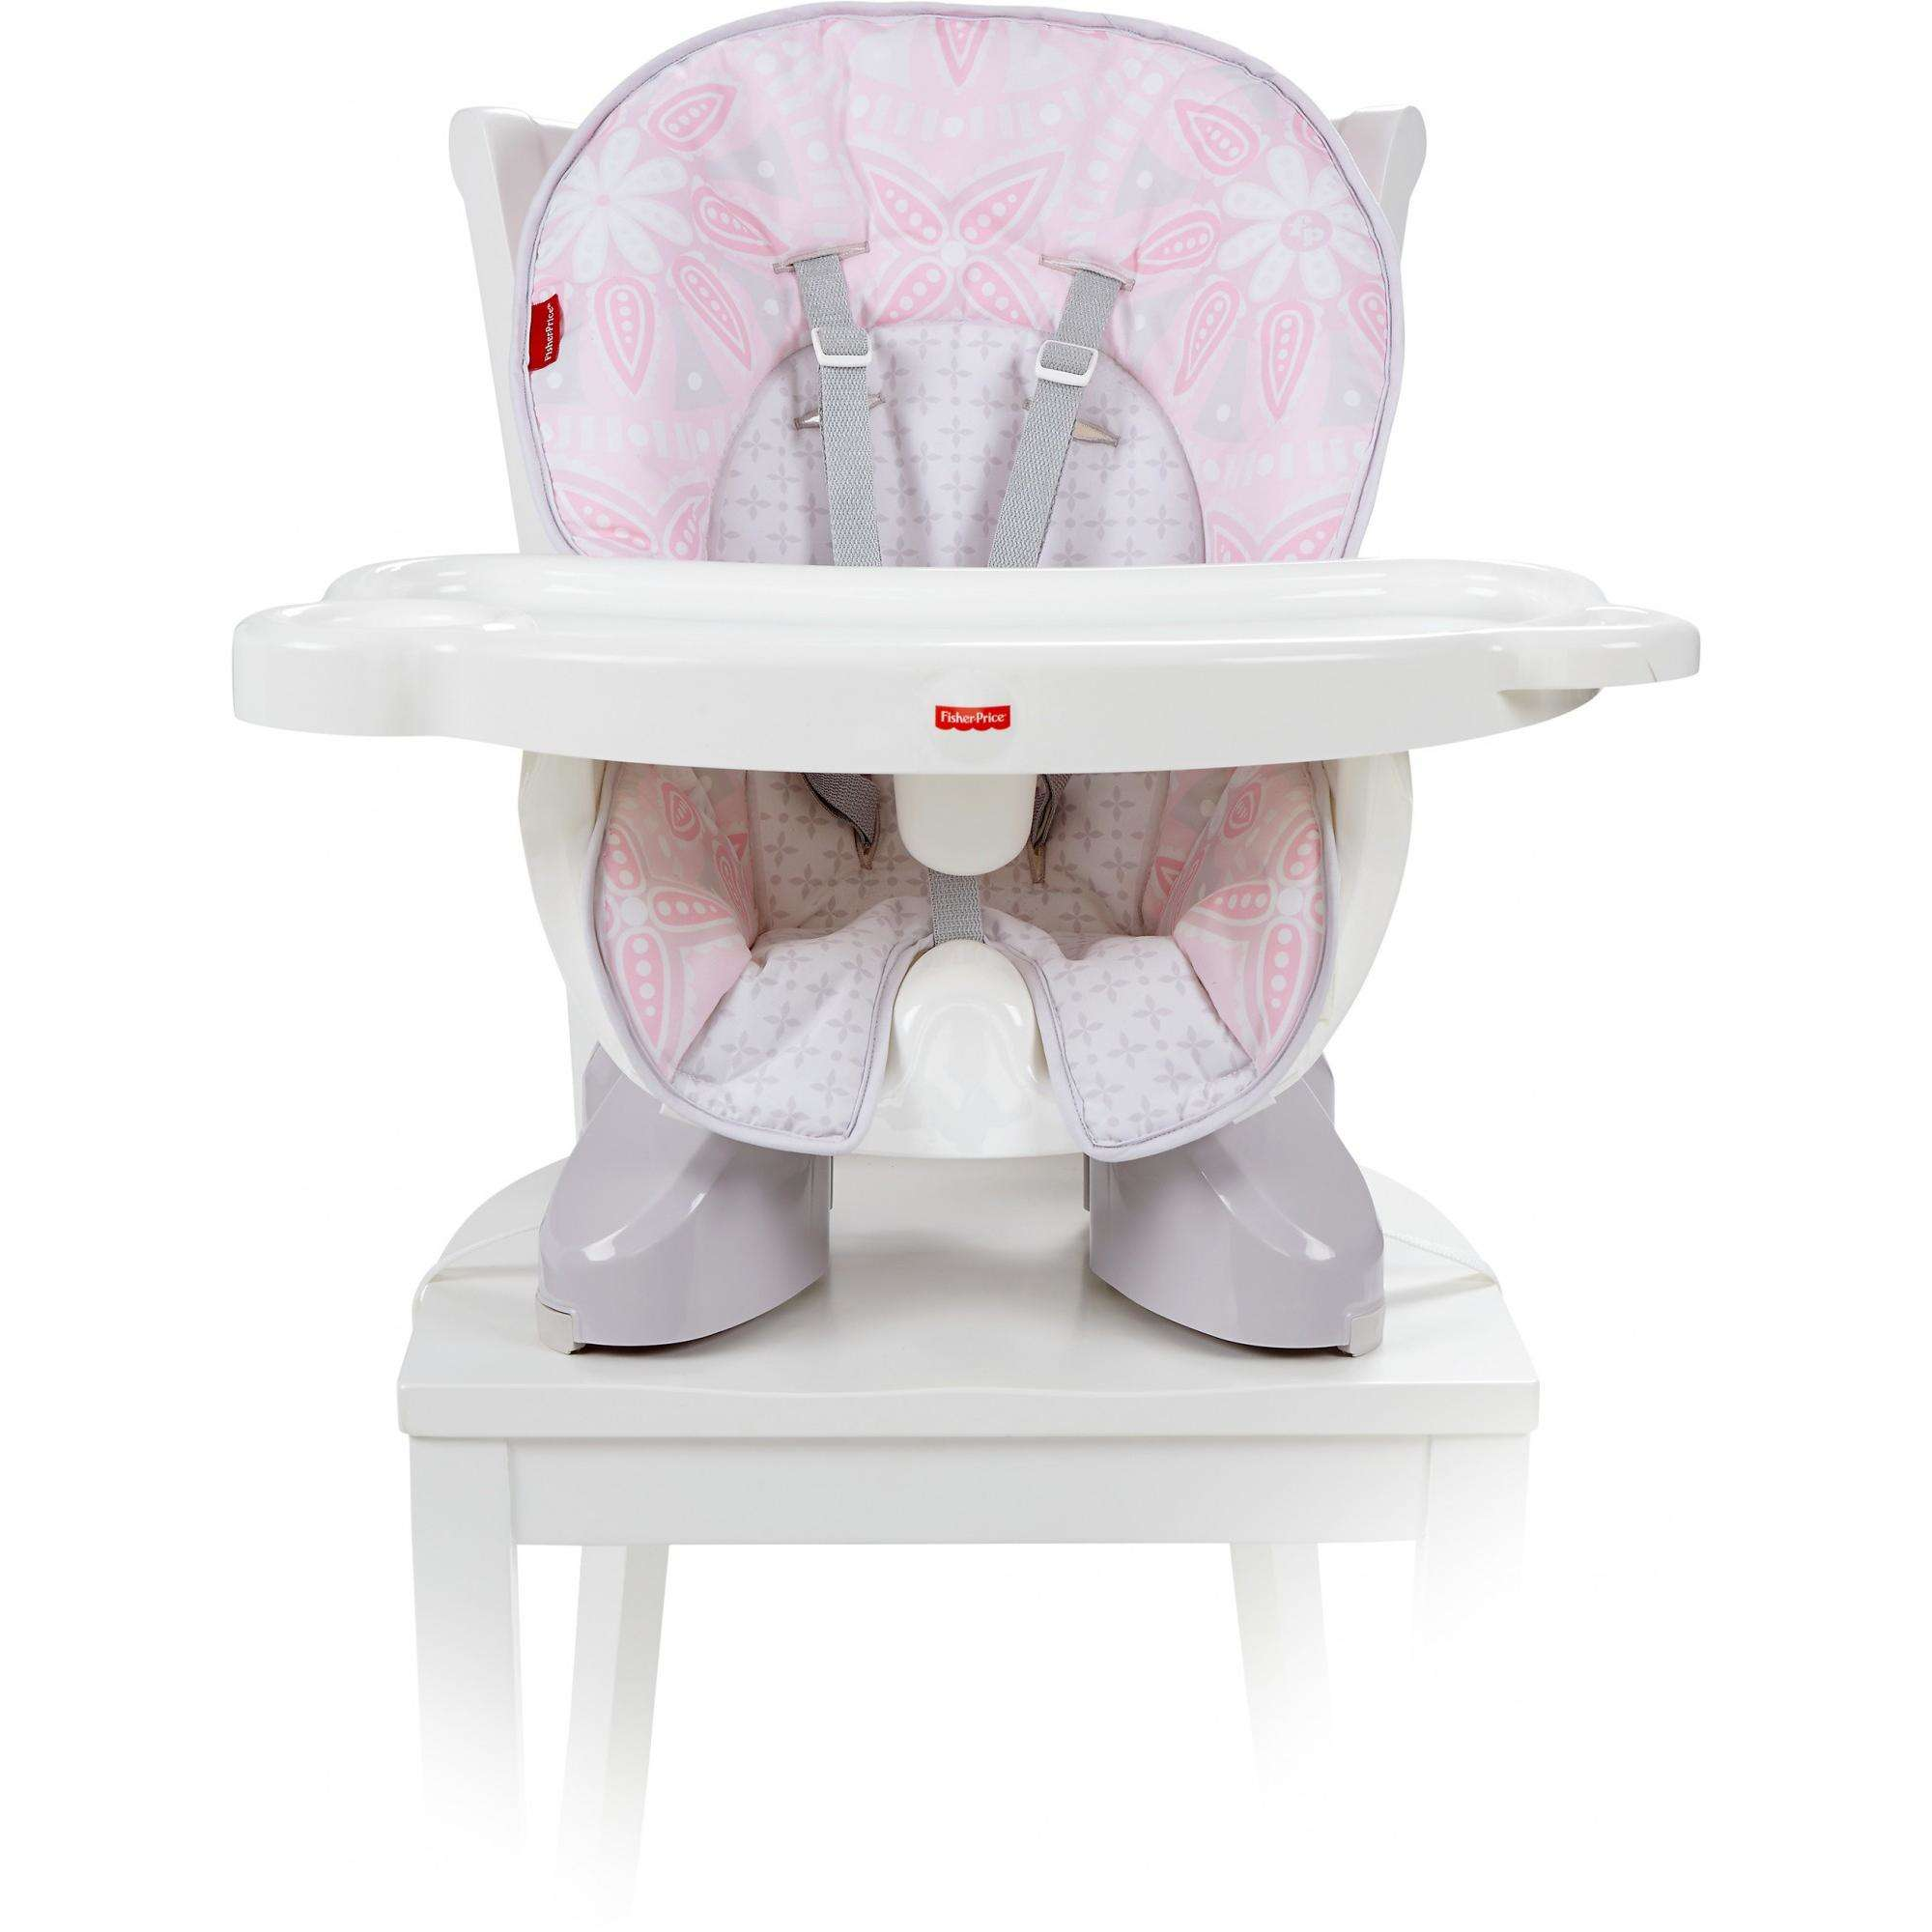 b21111f3a27 Fisher-Price SpaceSaver High Chair - Walmart.com